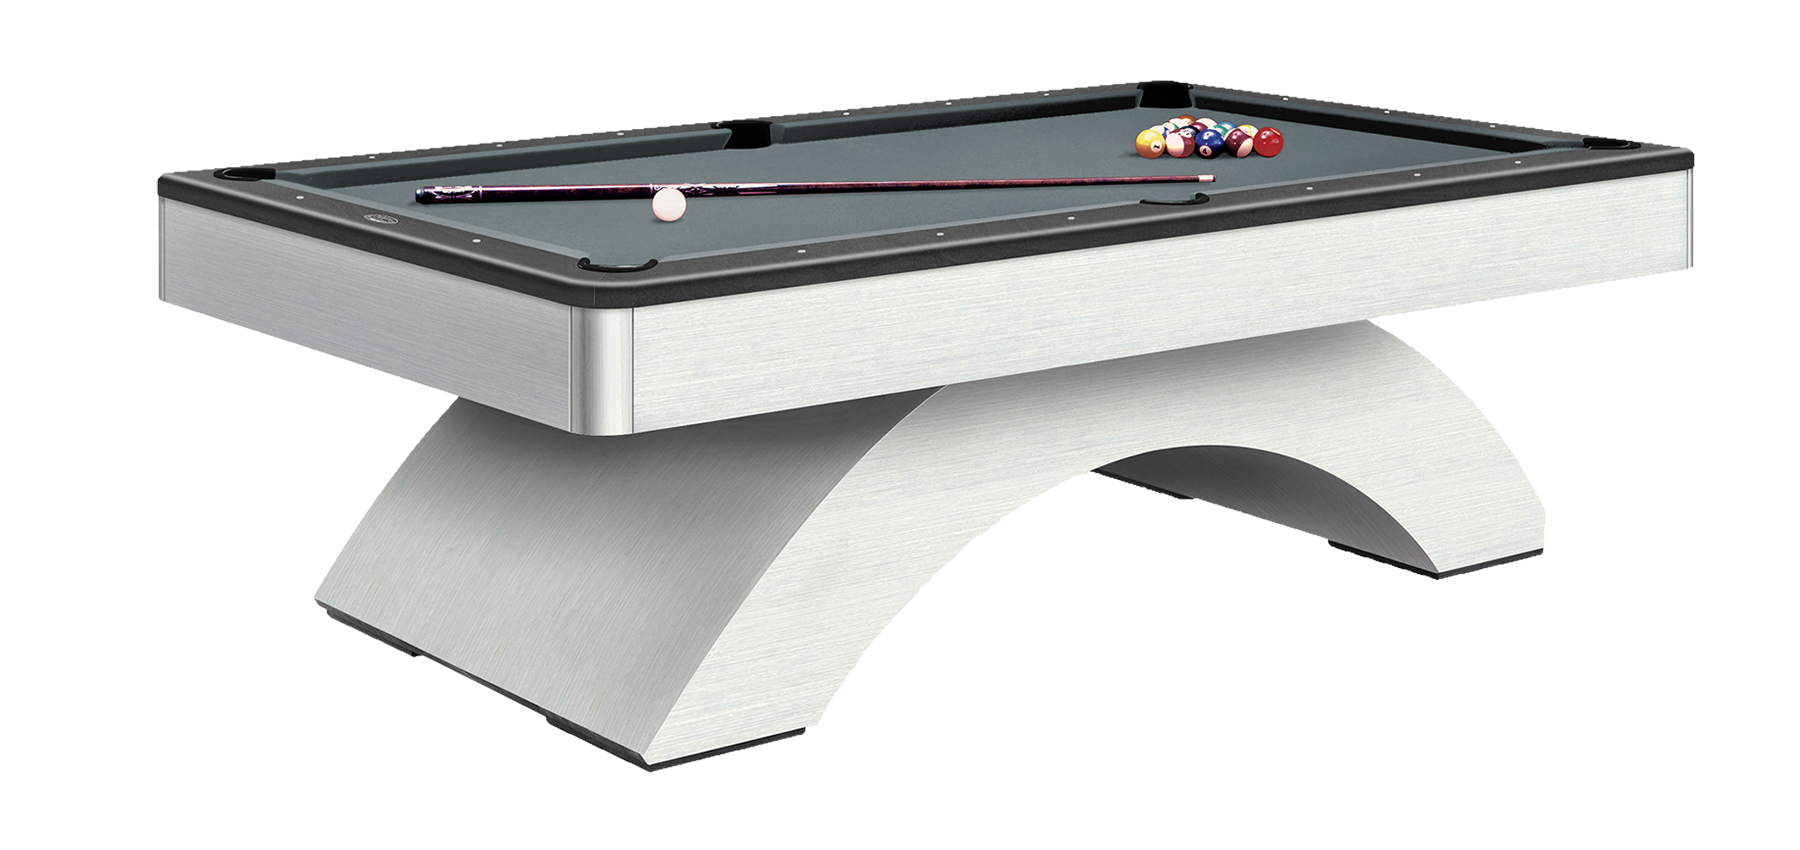 OLHAUSEN WATERFALL POOL TABLE - Olhausen madison pool table